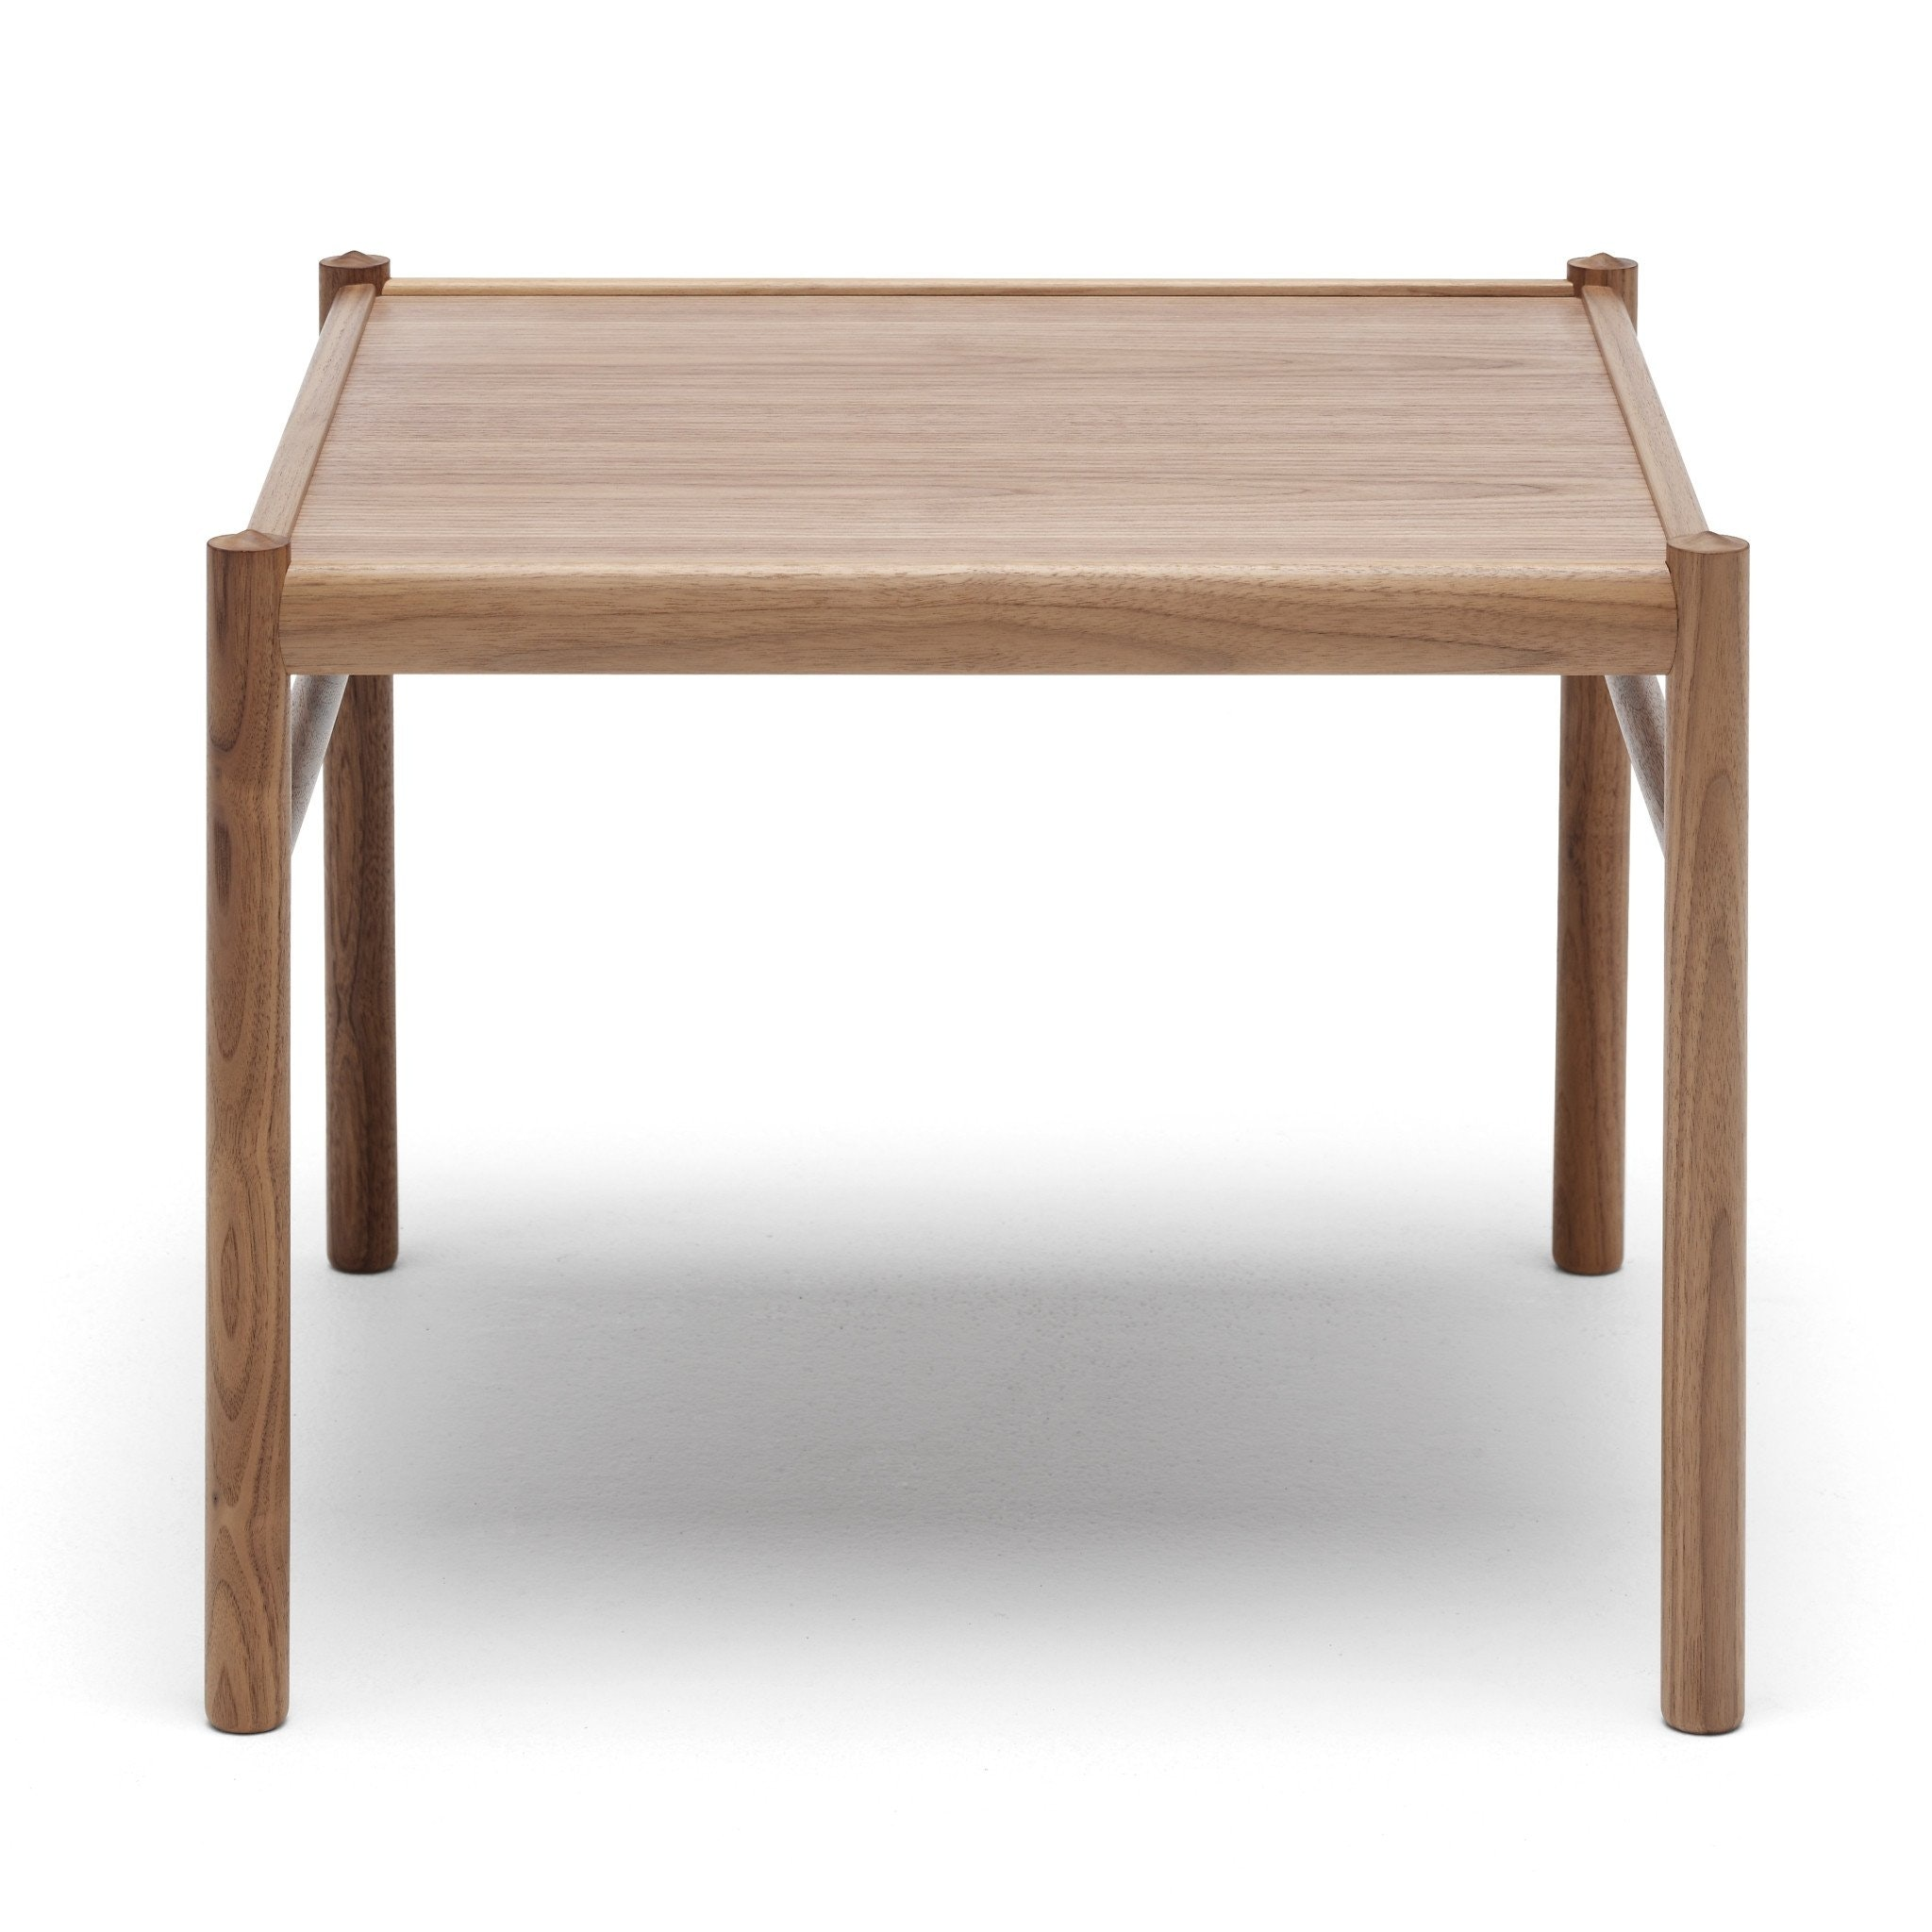 OW449 Colonial Coffee Table by Carl Hansen & Søn